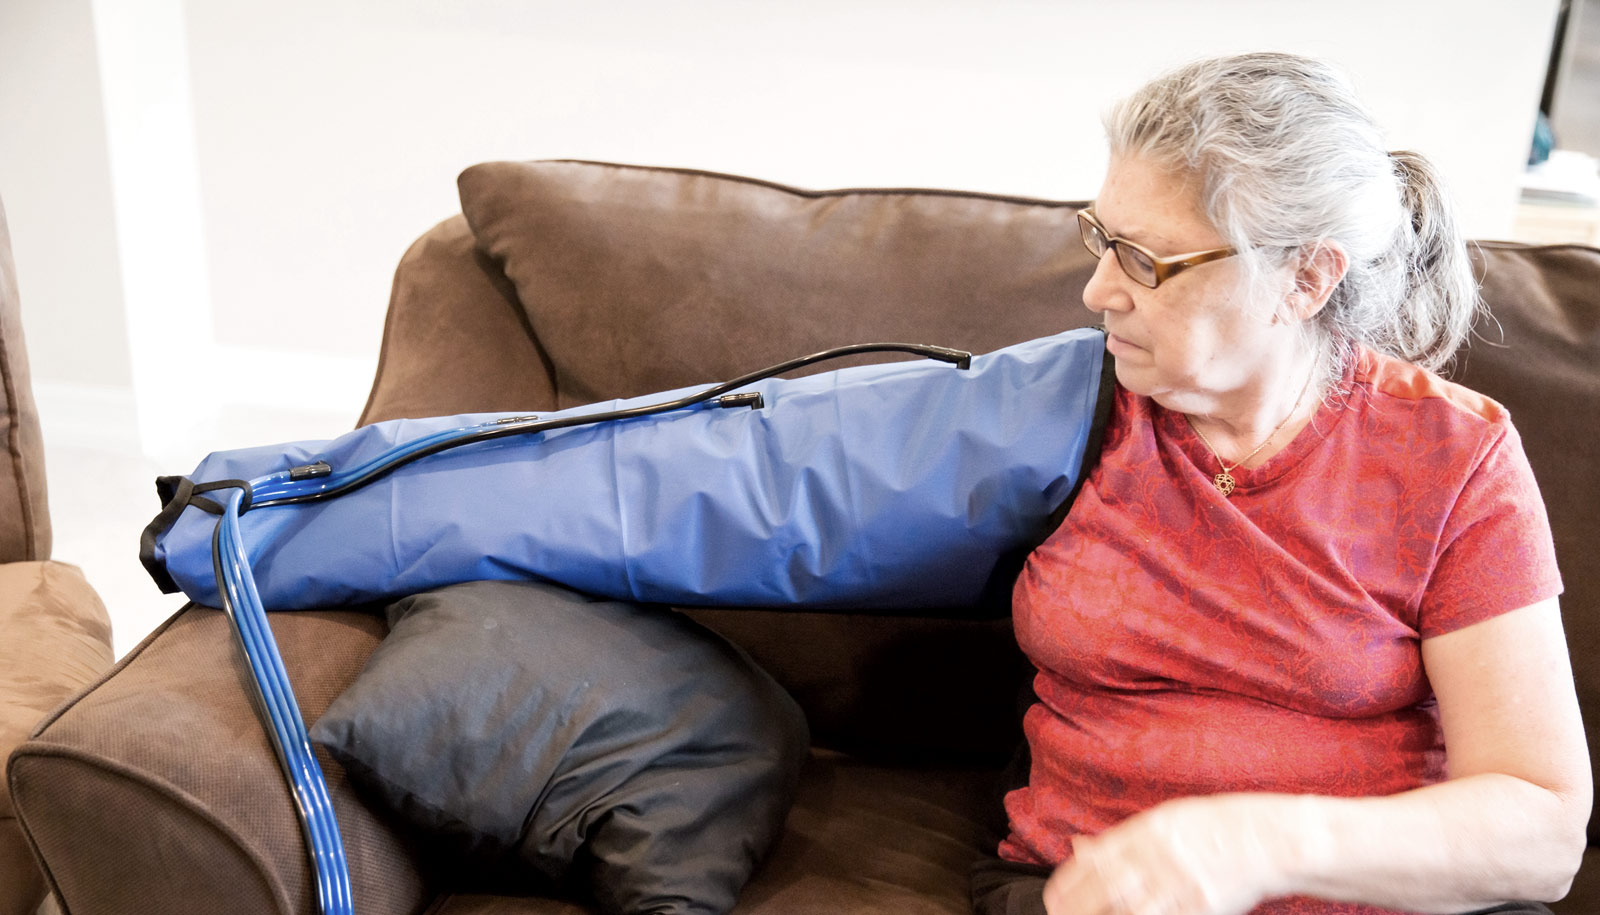 Tech may beat tape measure to predict lymphedema risk